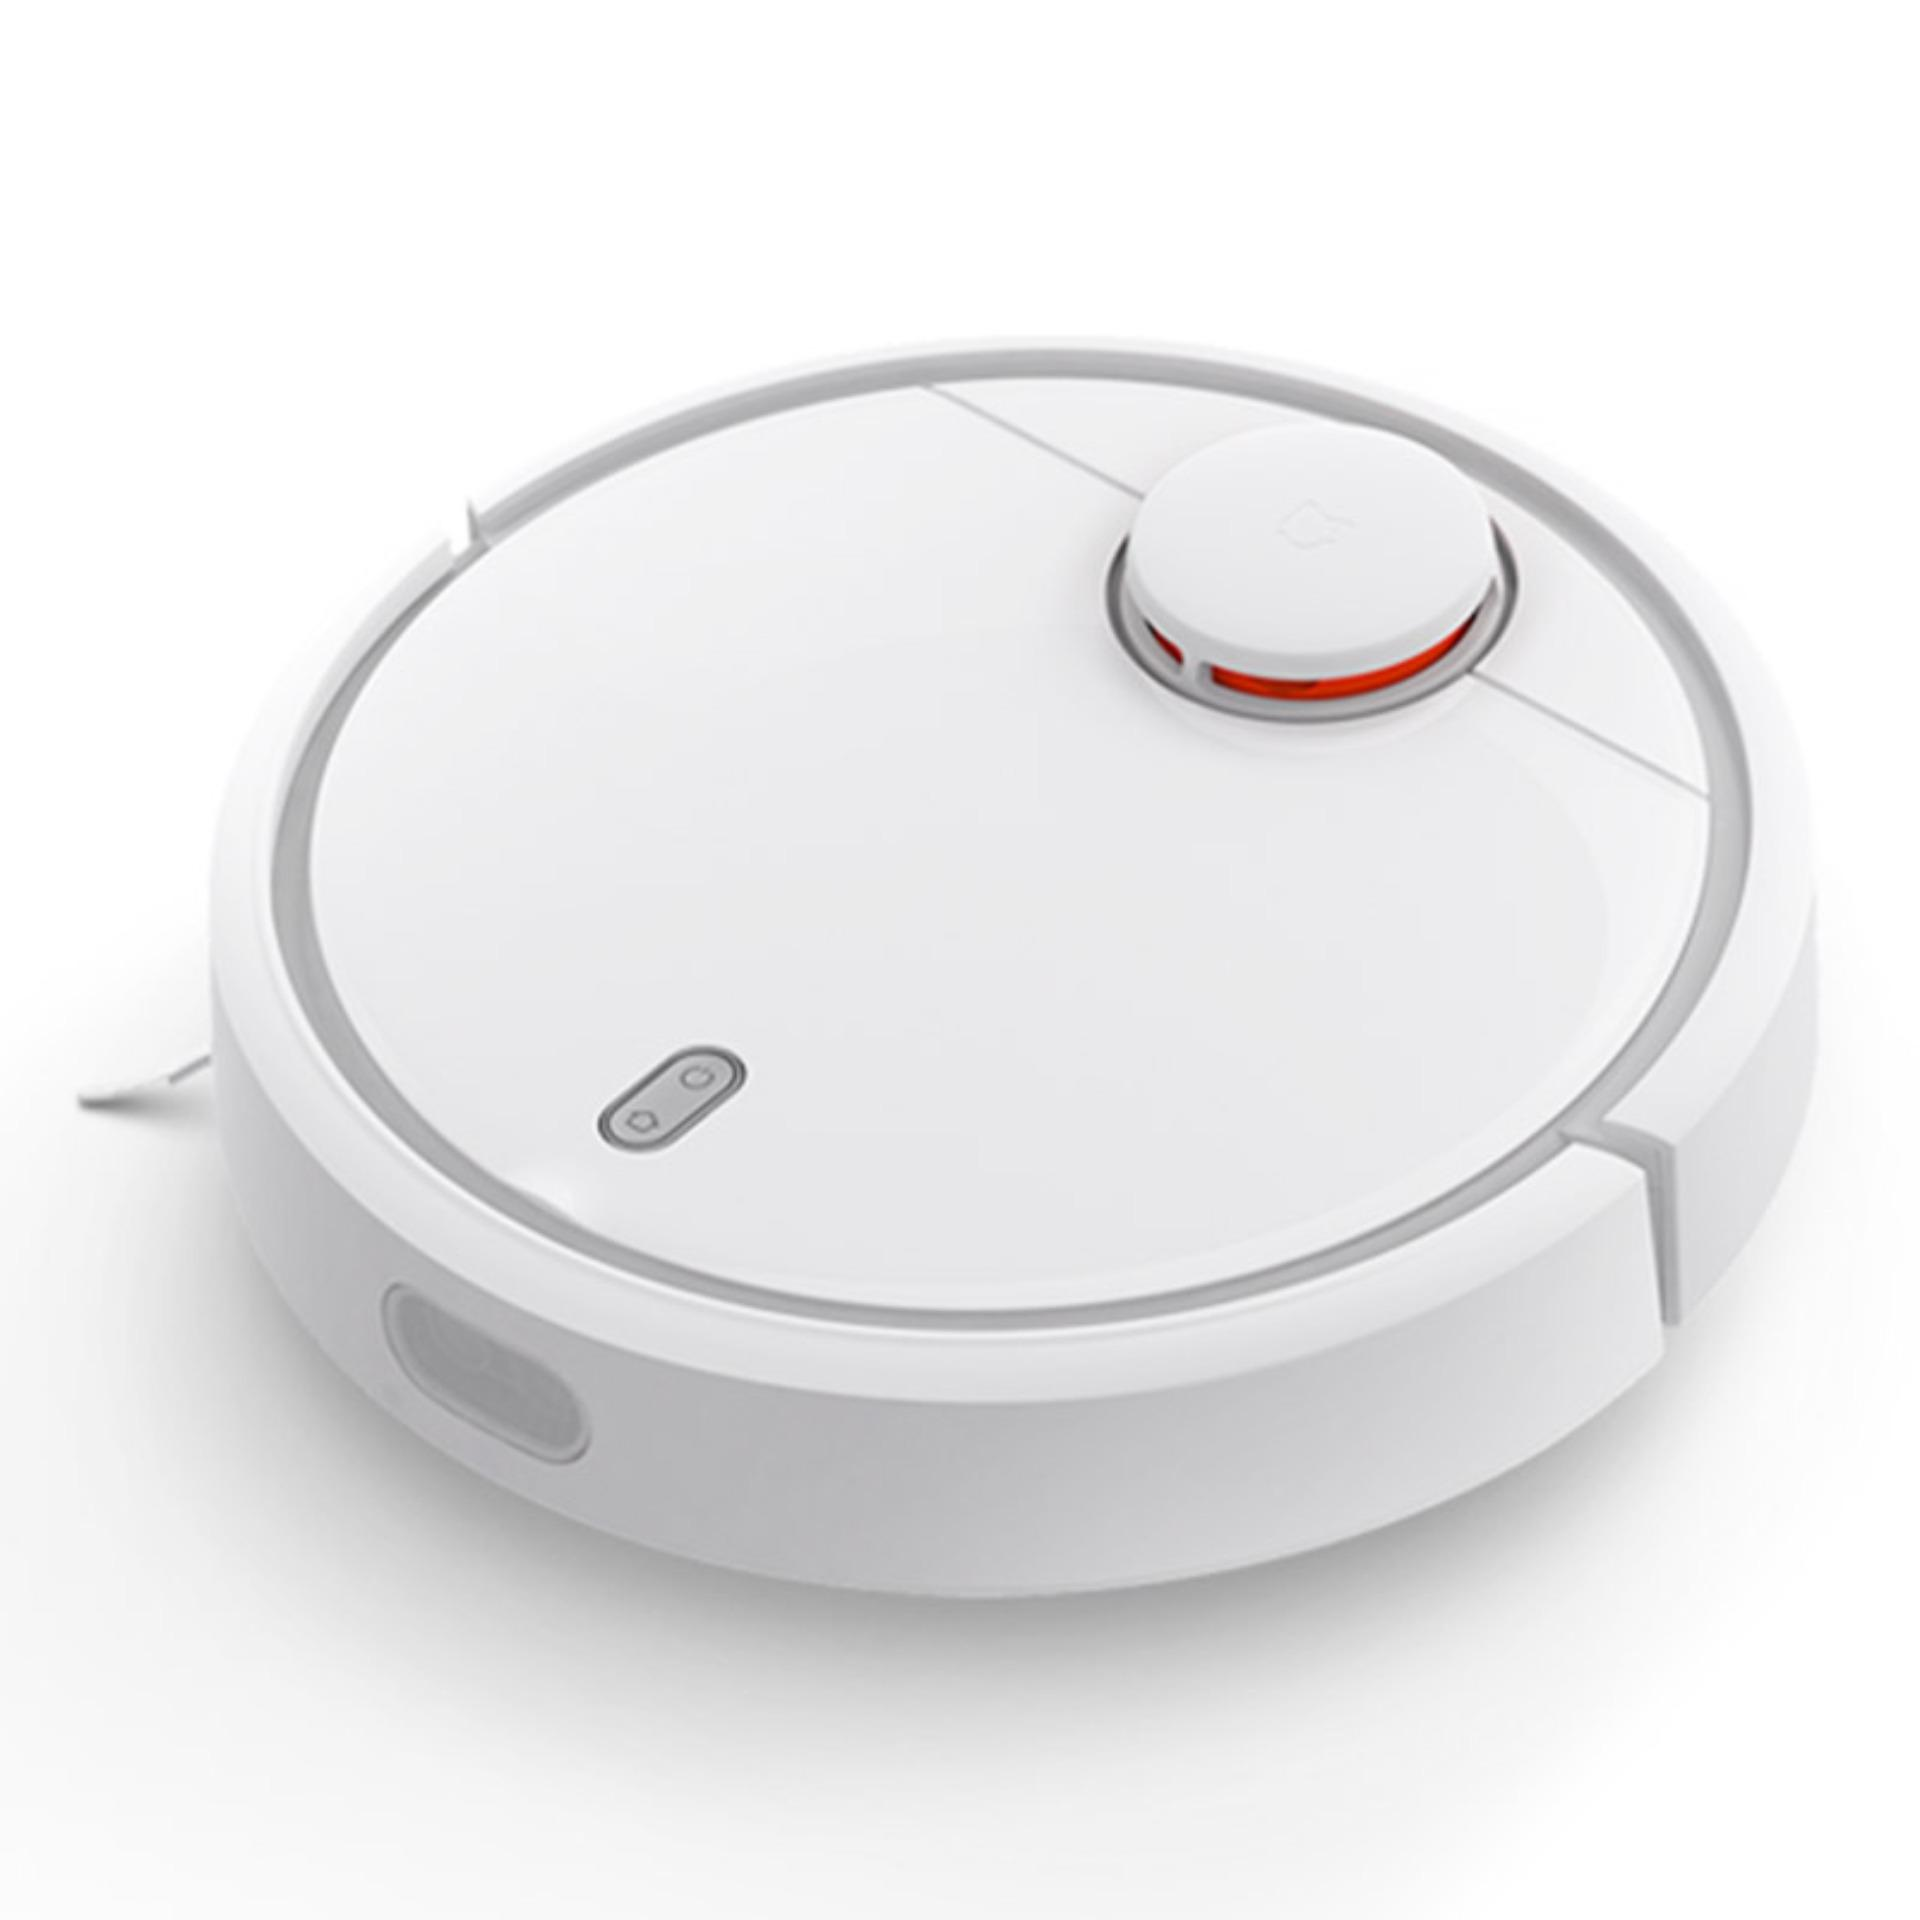 Where Can You Buy Xiaomi Mi Roborock Roboto Vacuum Cleaner 【3 Months Warranty】